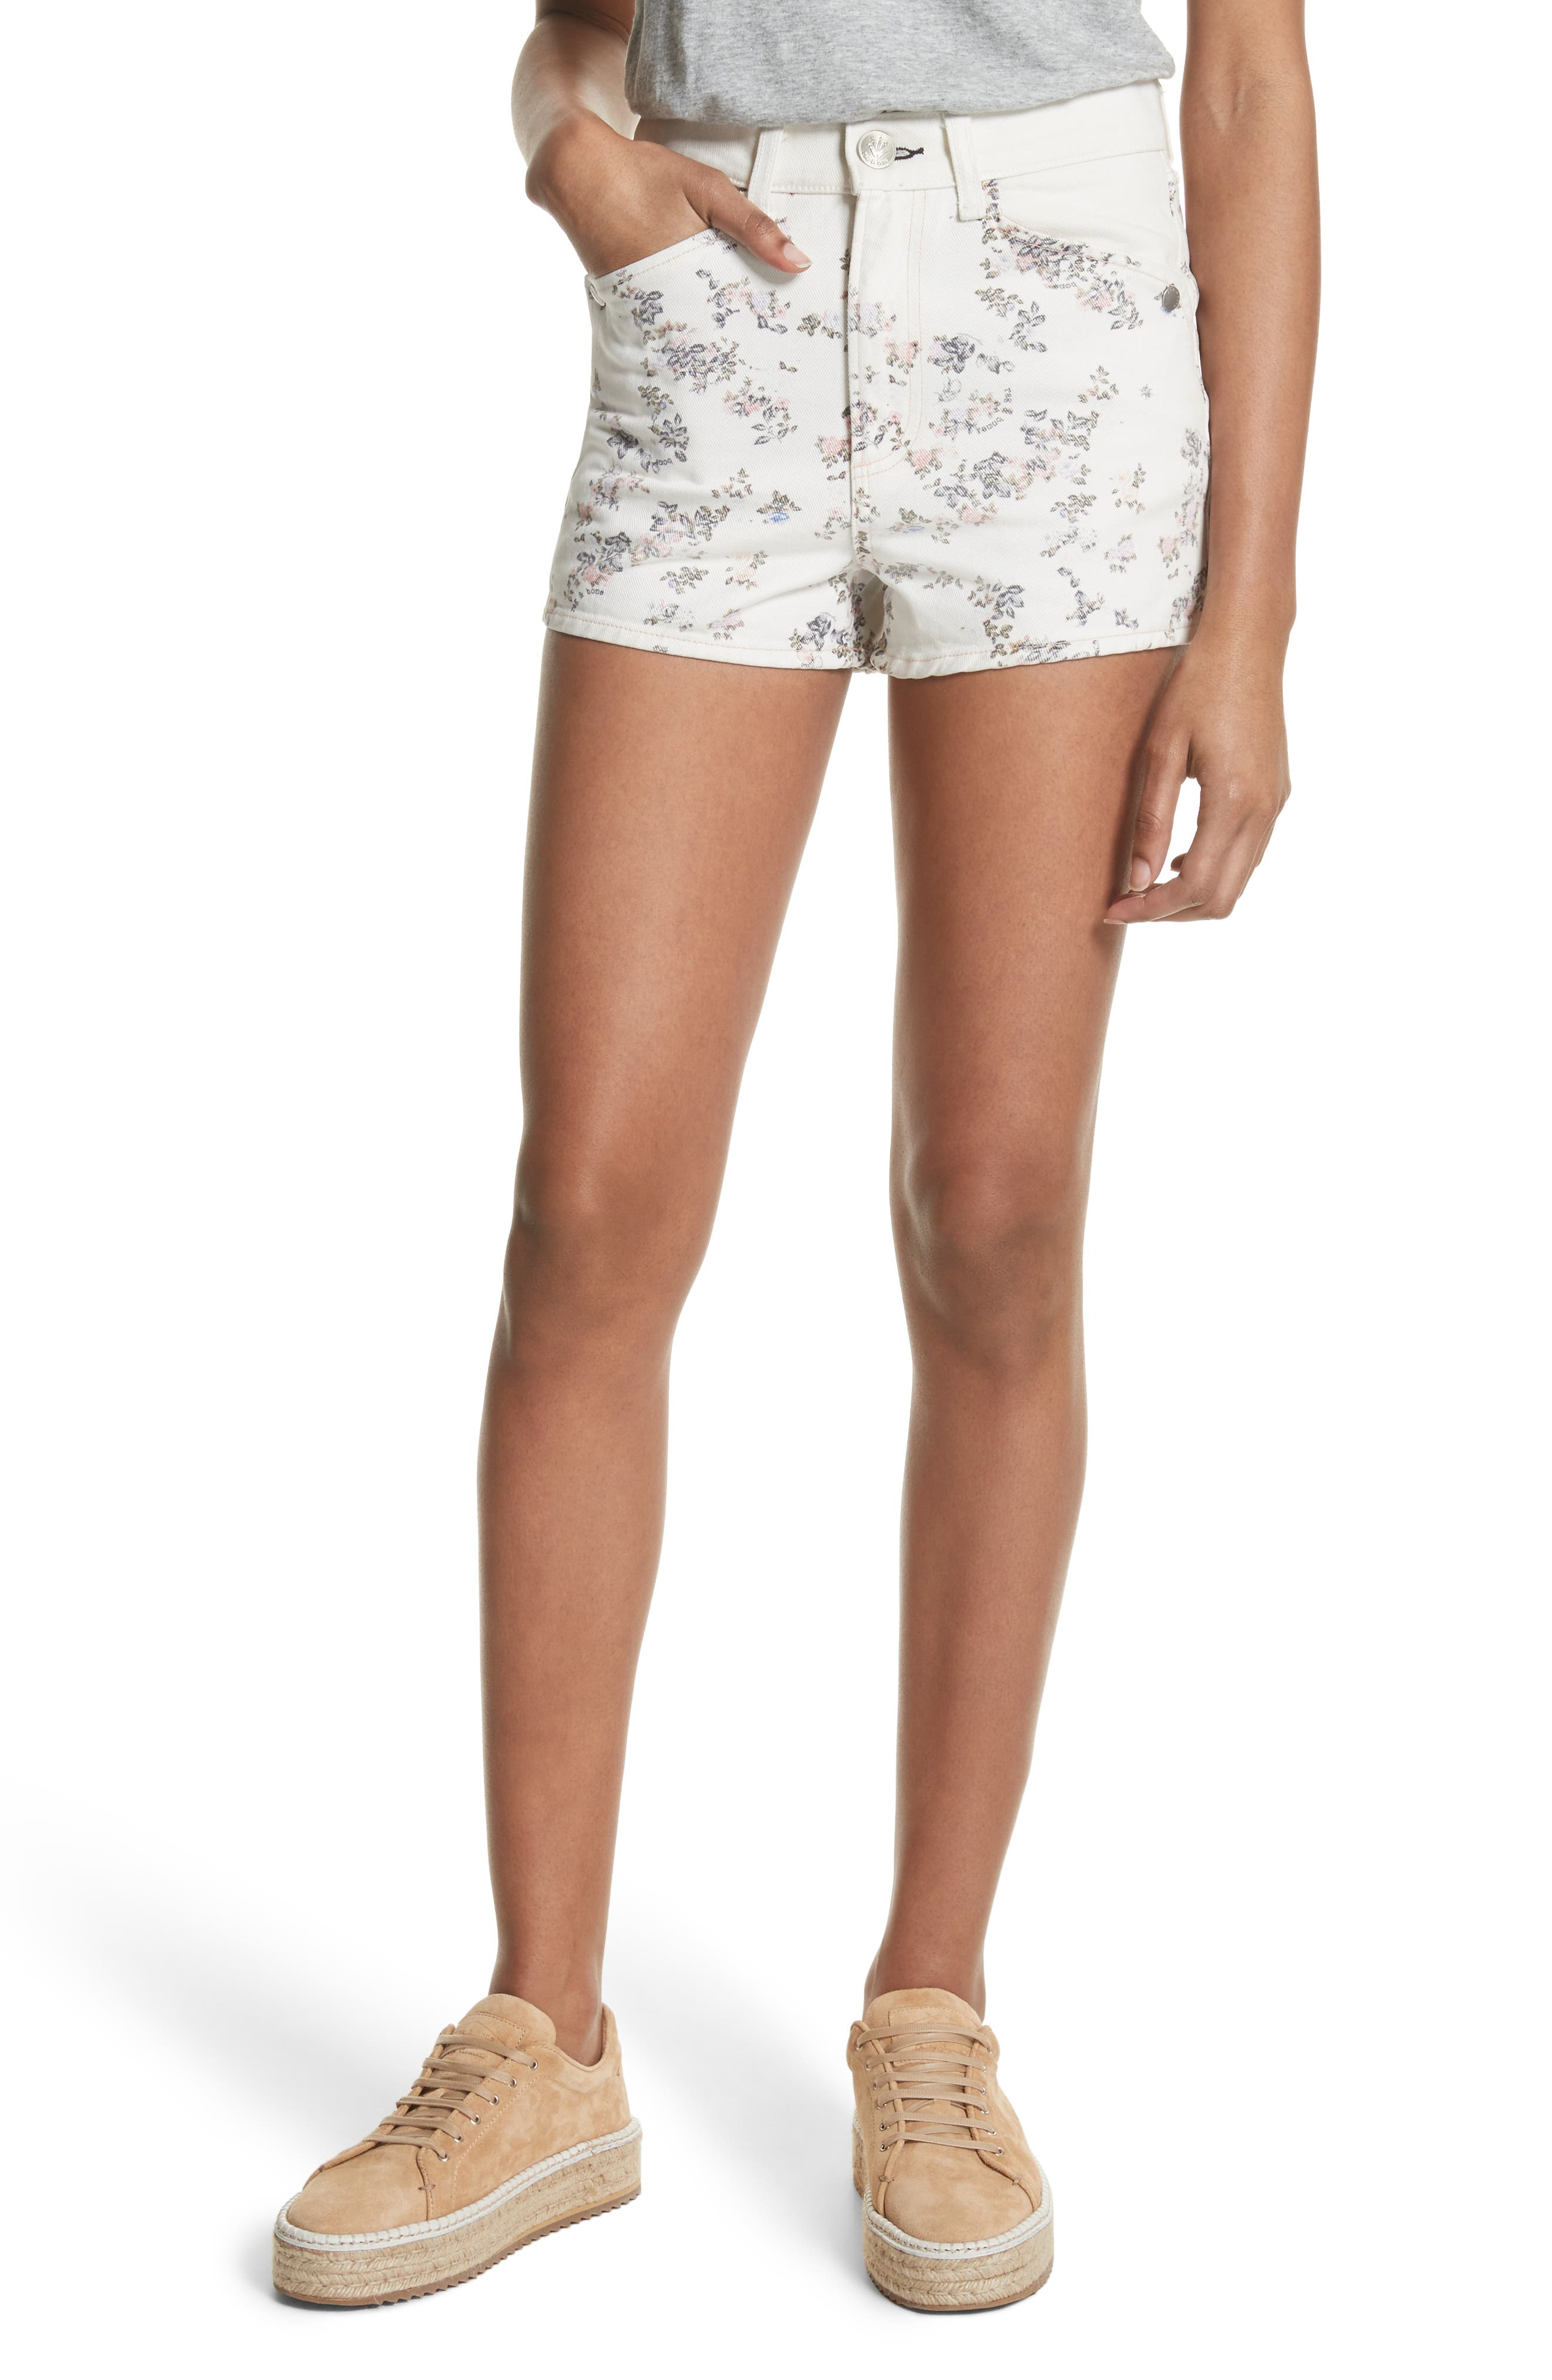 Ellie Twill Shorts,                         Main,                         color, Micro Floral